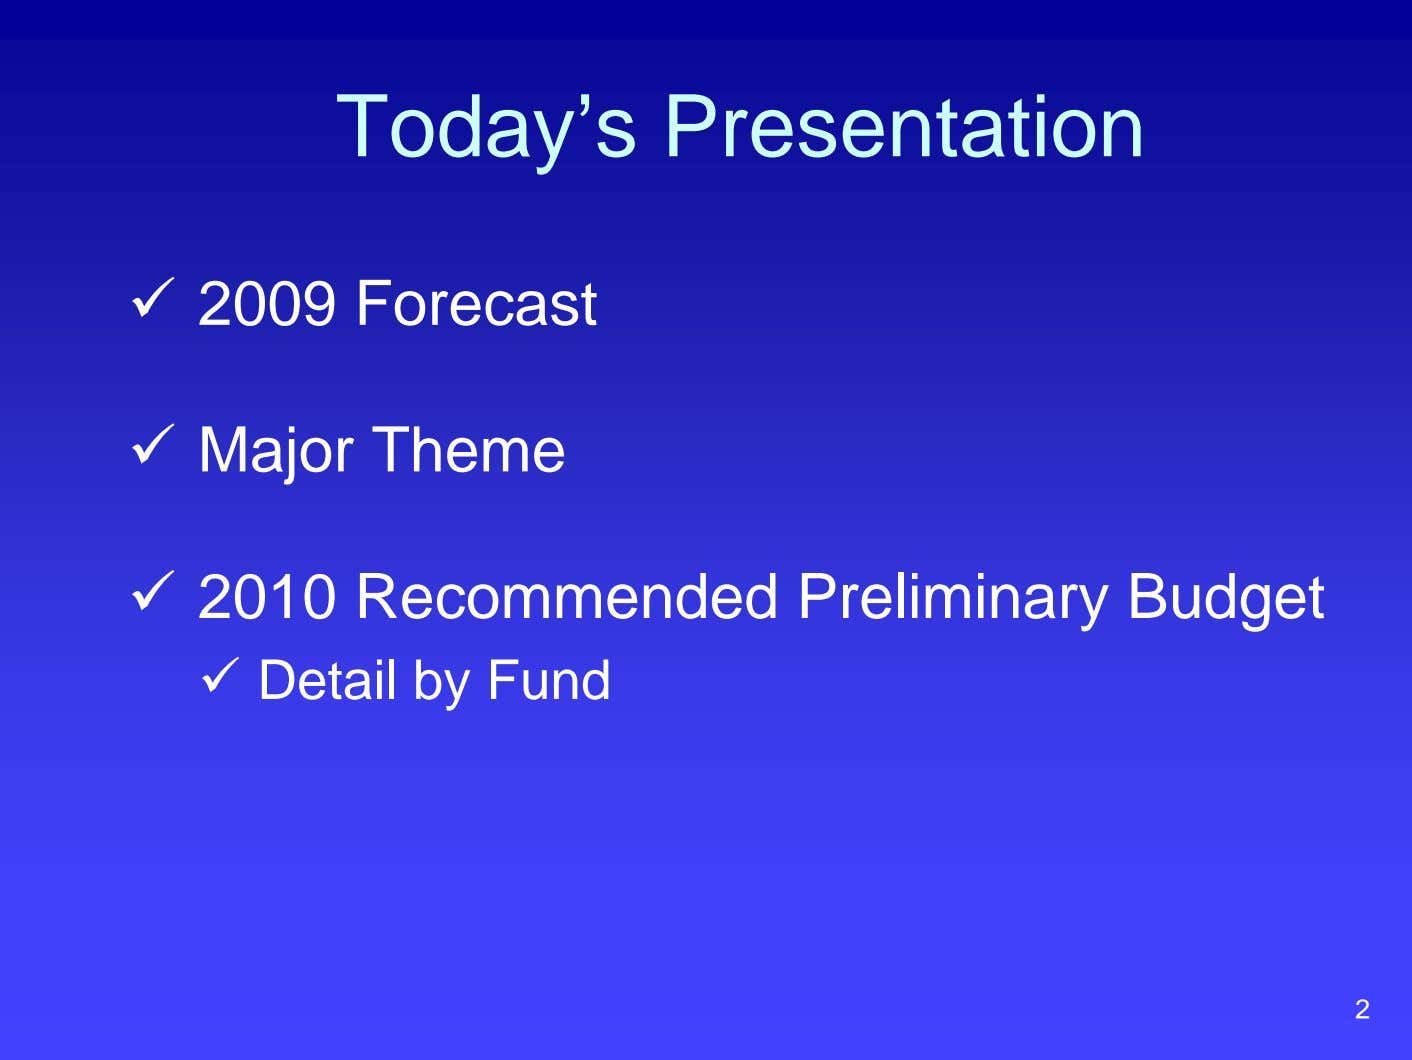 Today's Presentation 2009 Forecast Major Theme 2010 Recommended Preliminary Budget Detail by Fund 2